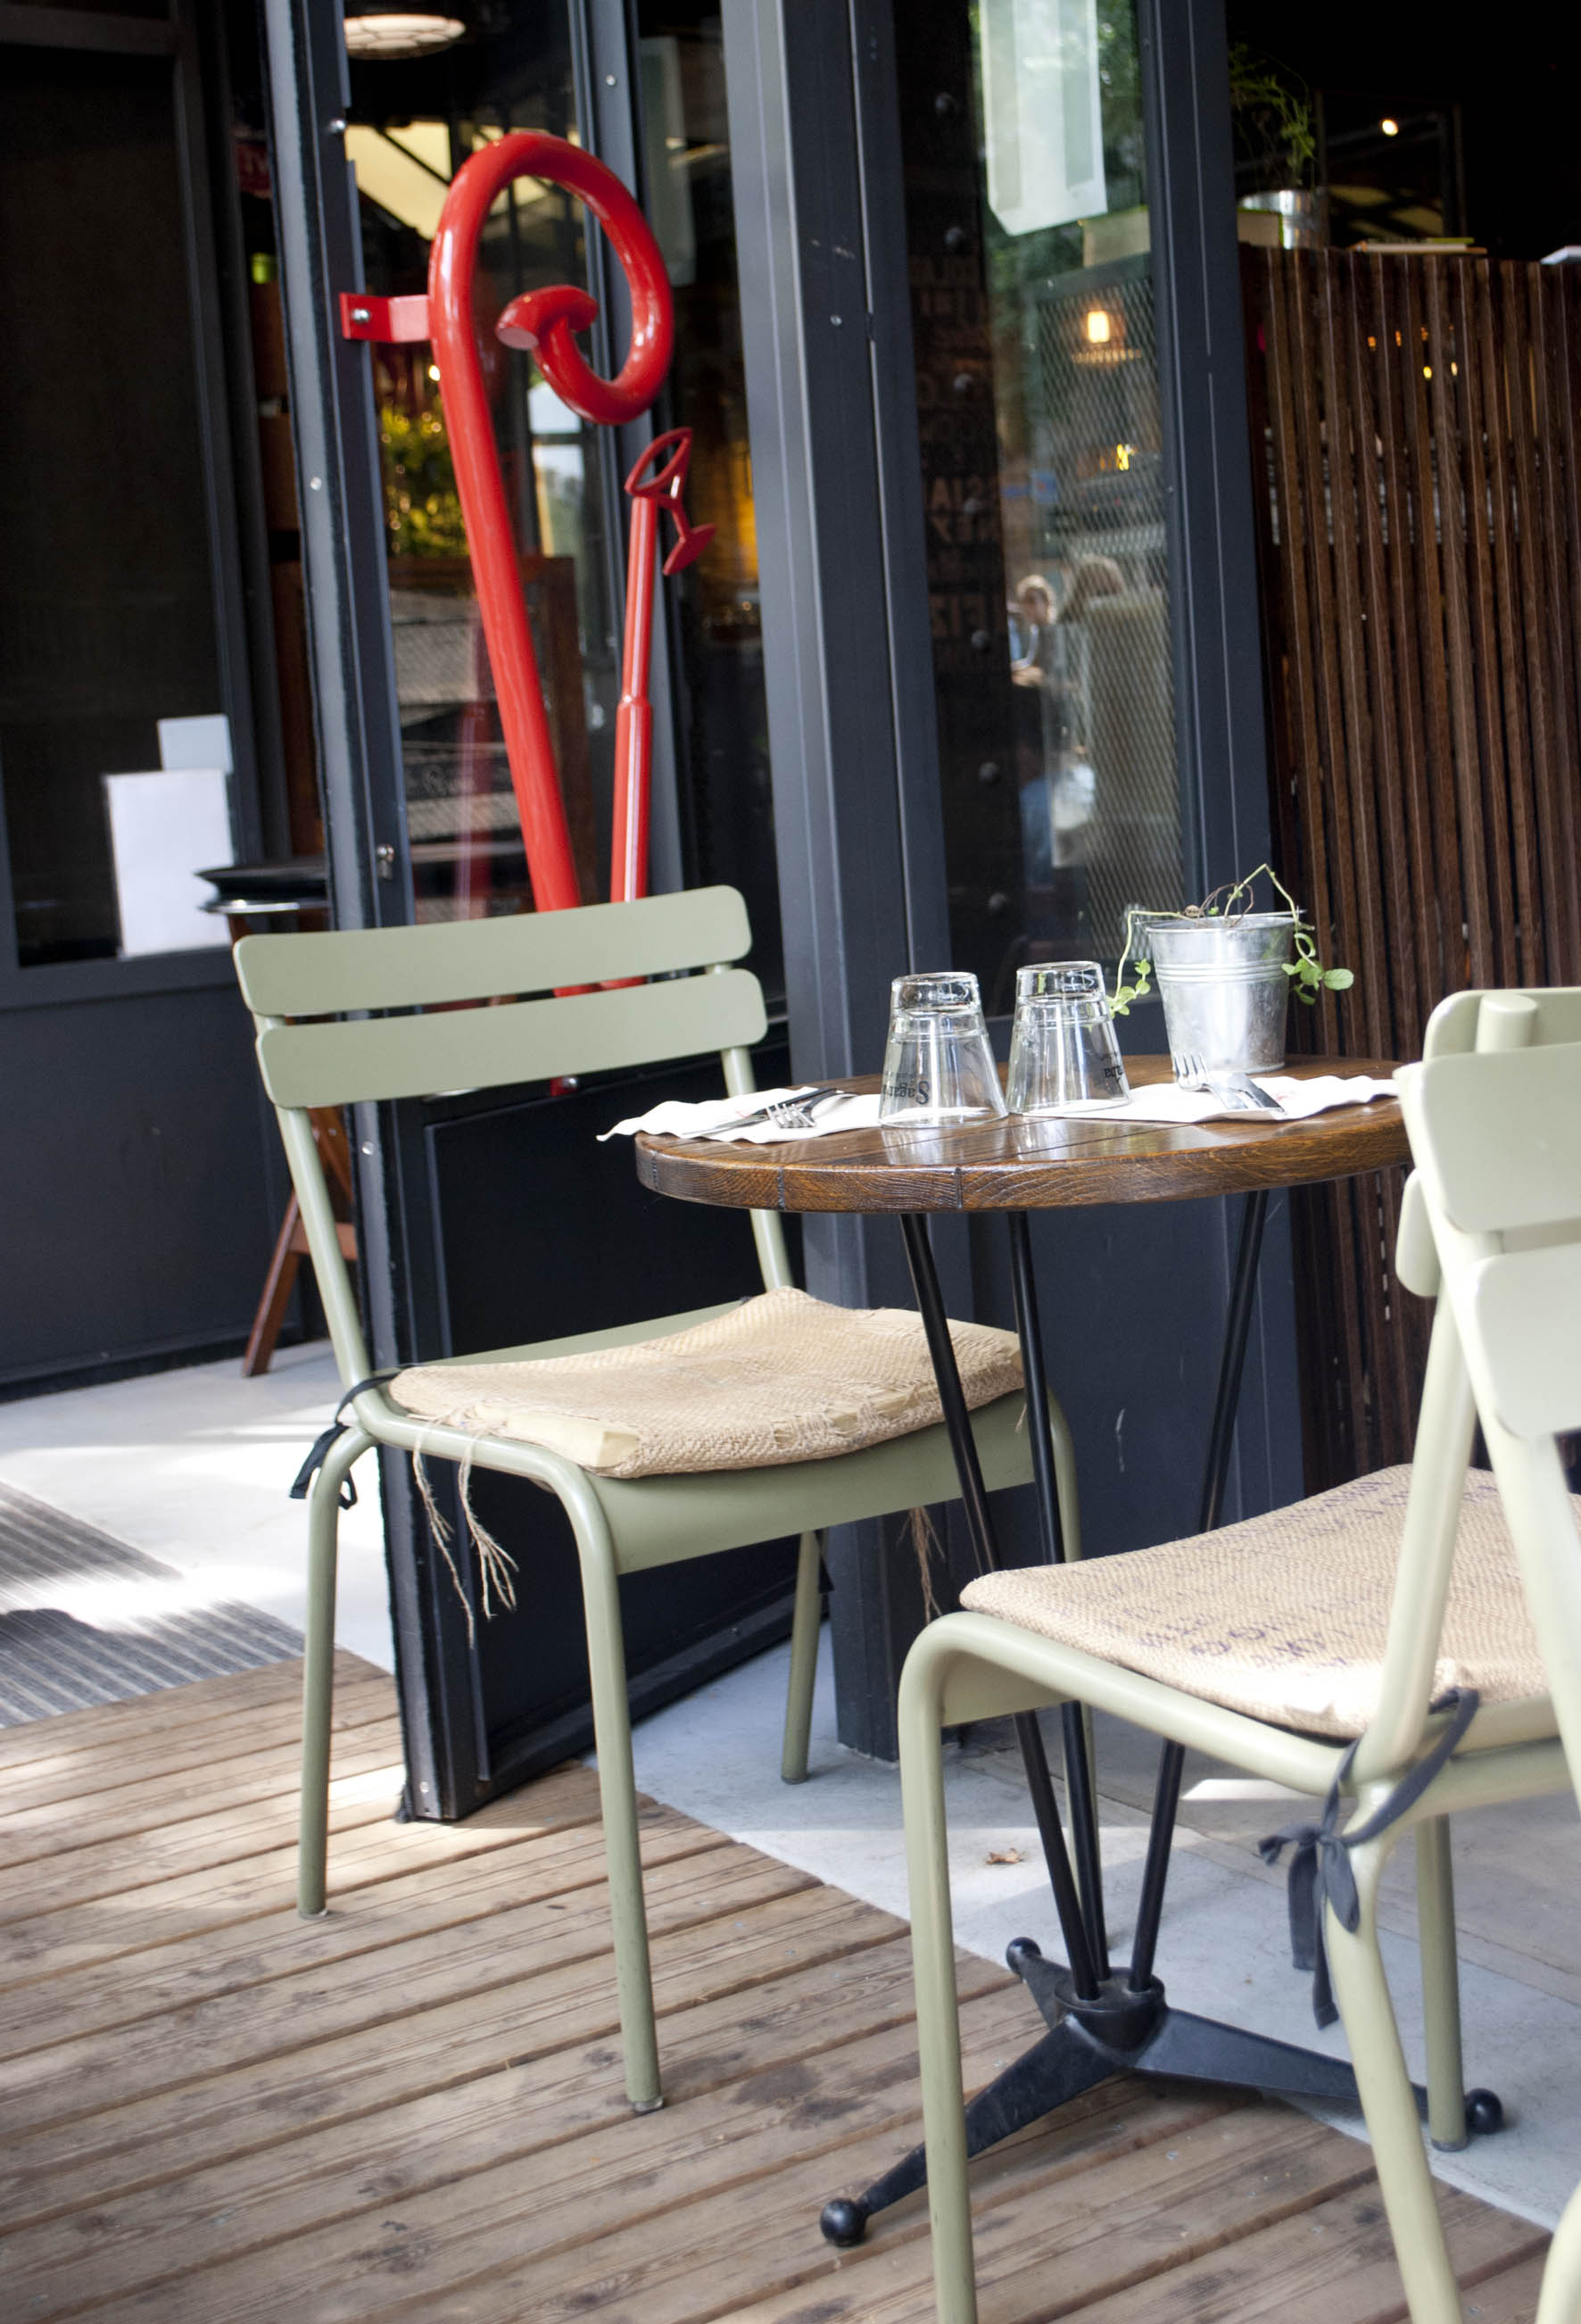 Outside seating with burlap cushions